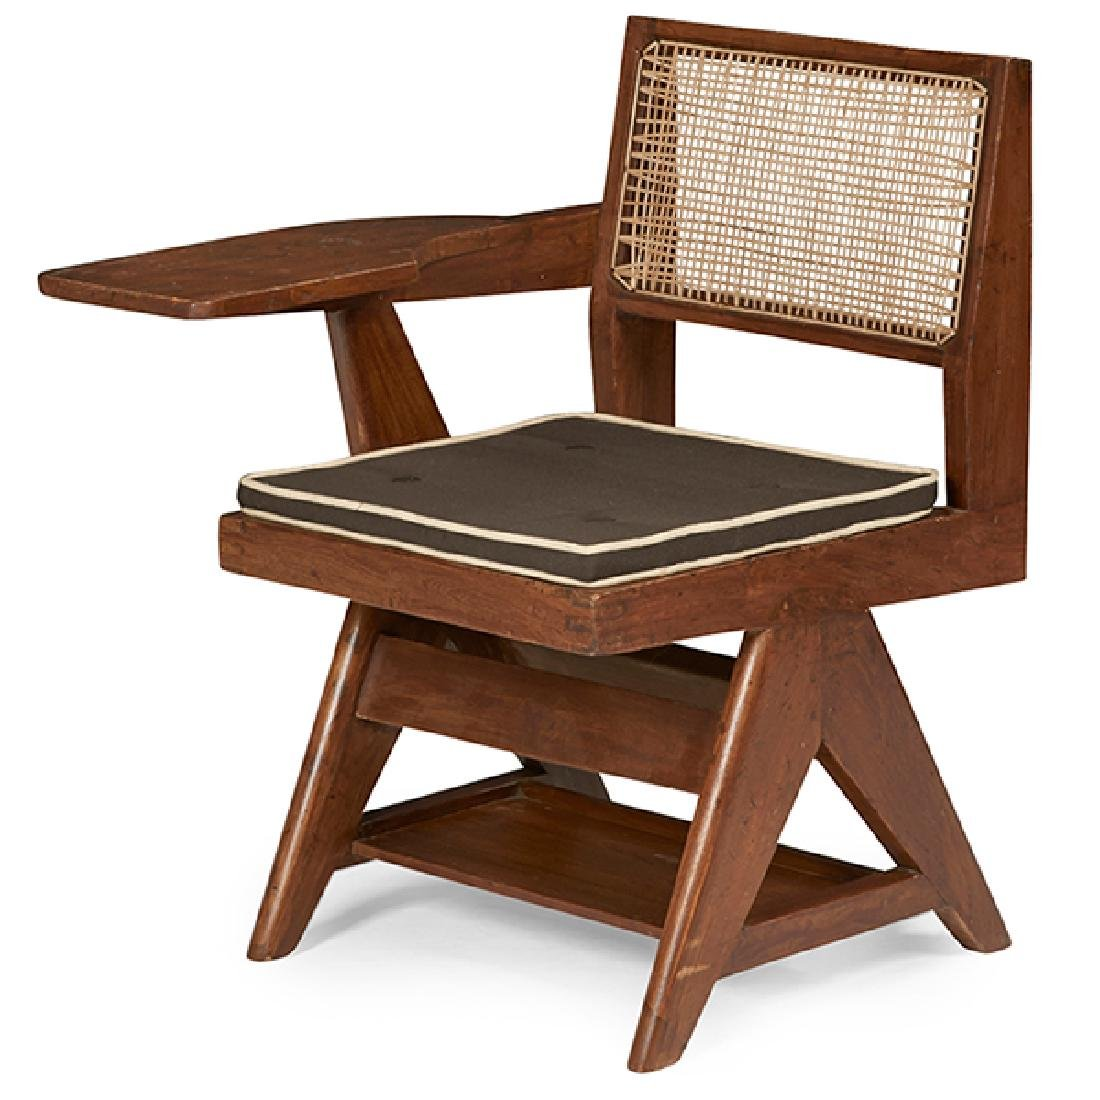 Pierre Jeanneret (1896-1967) Writing Chair, model